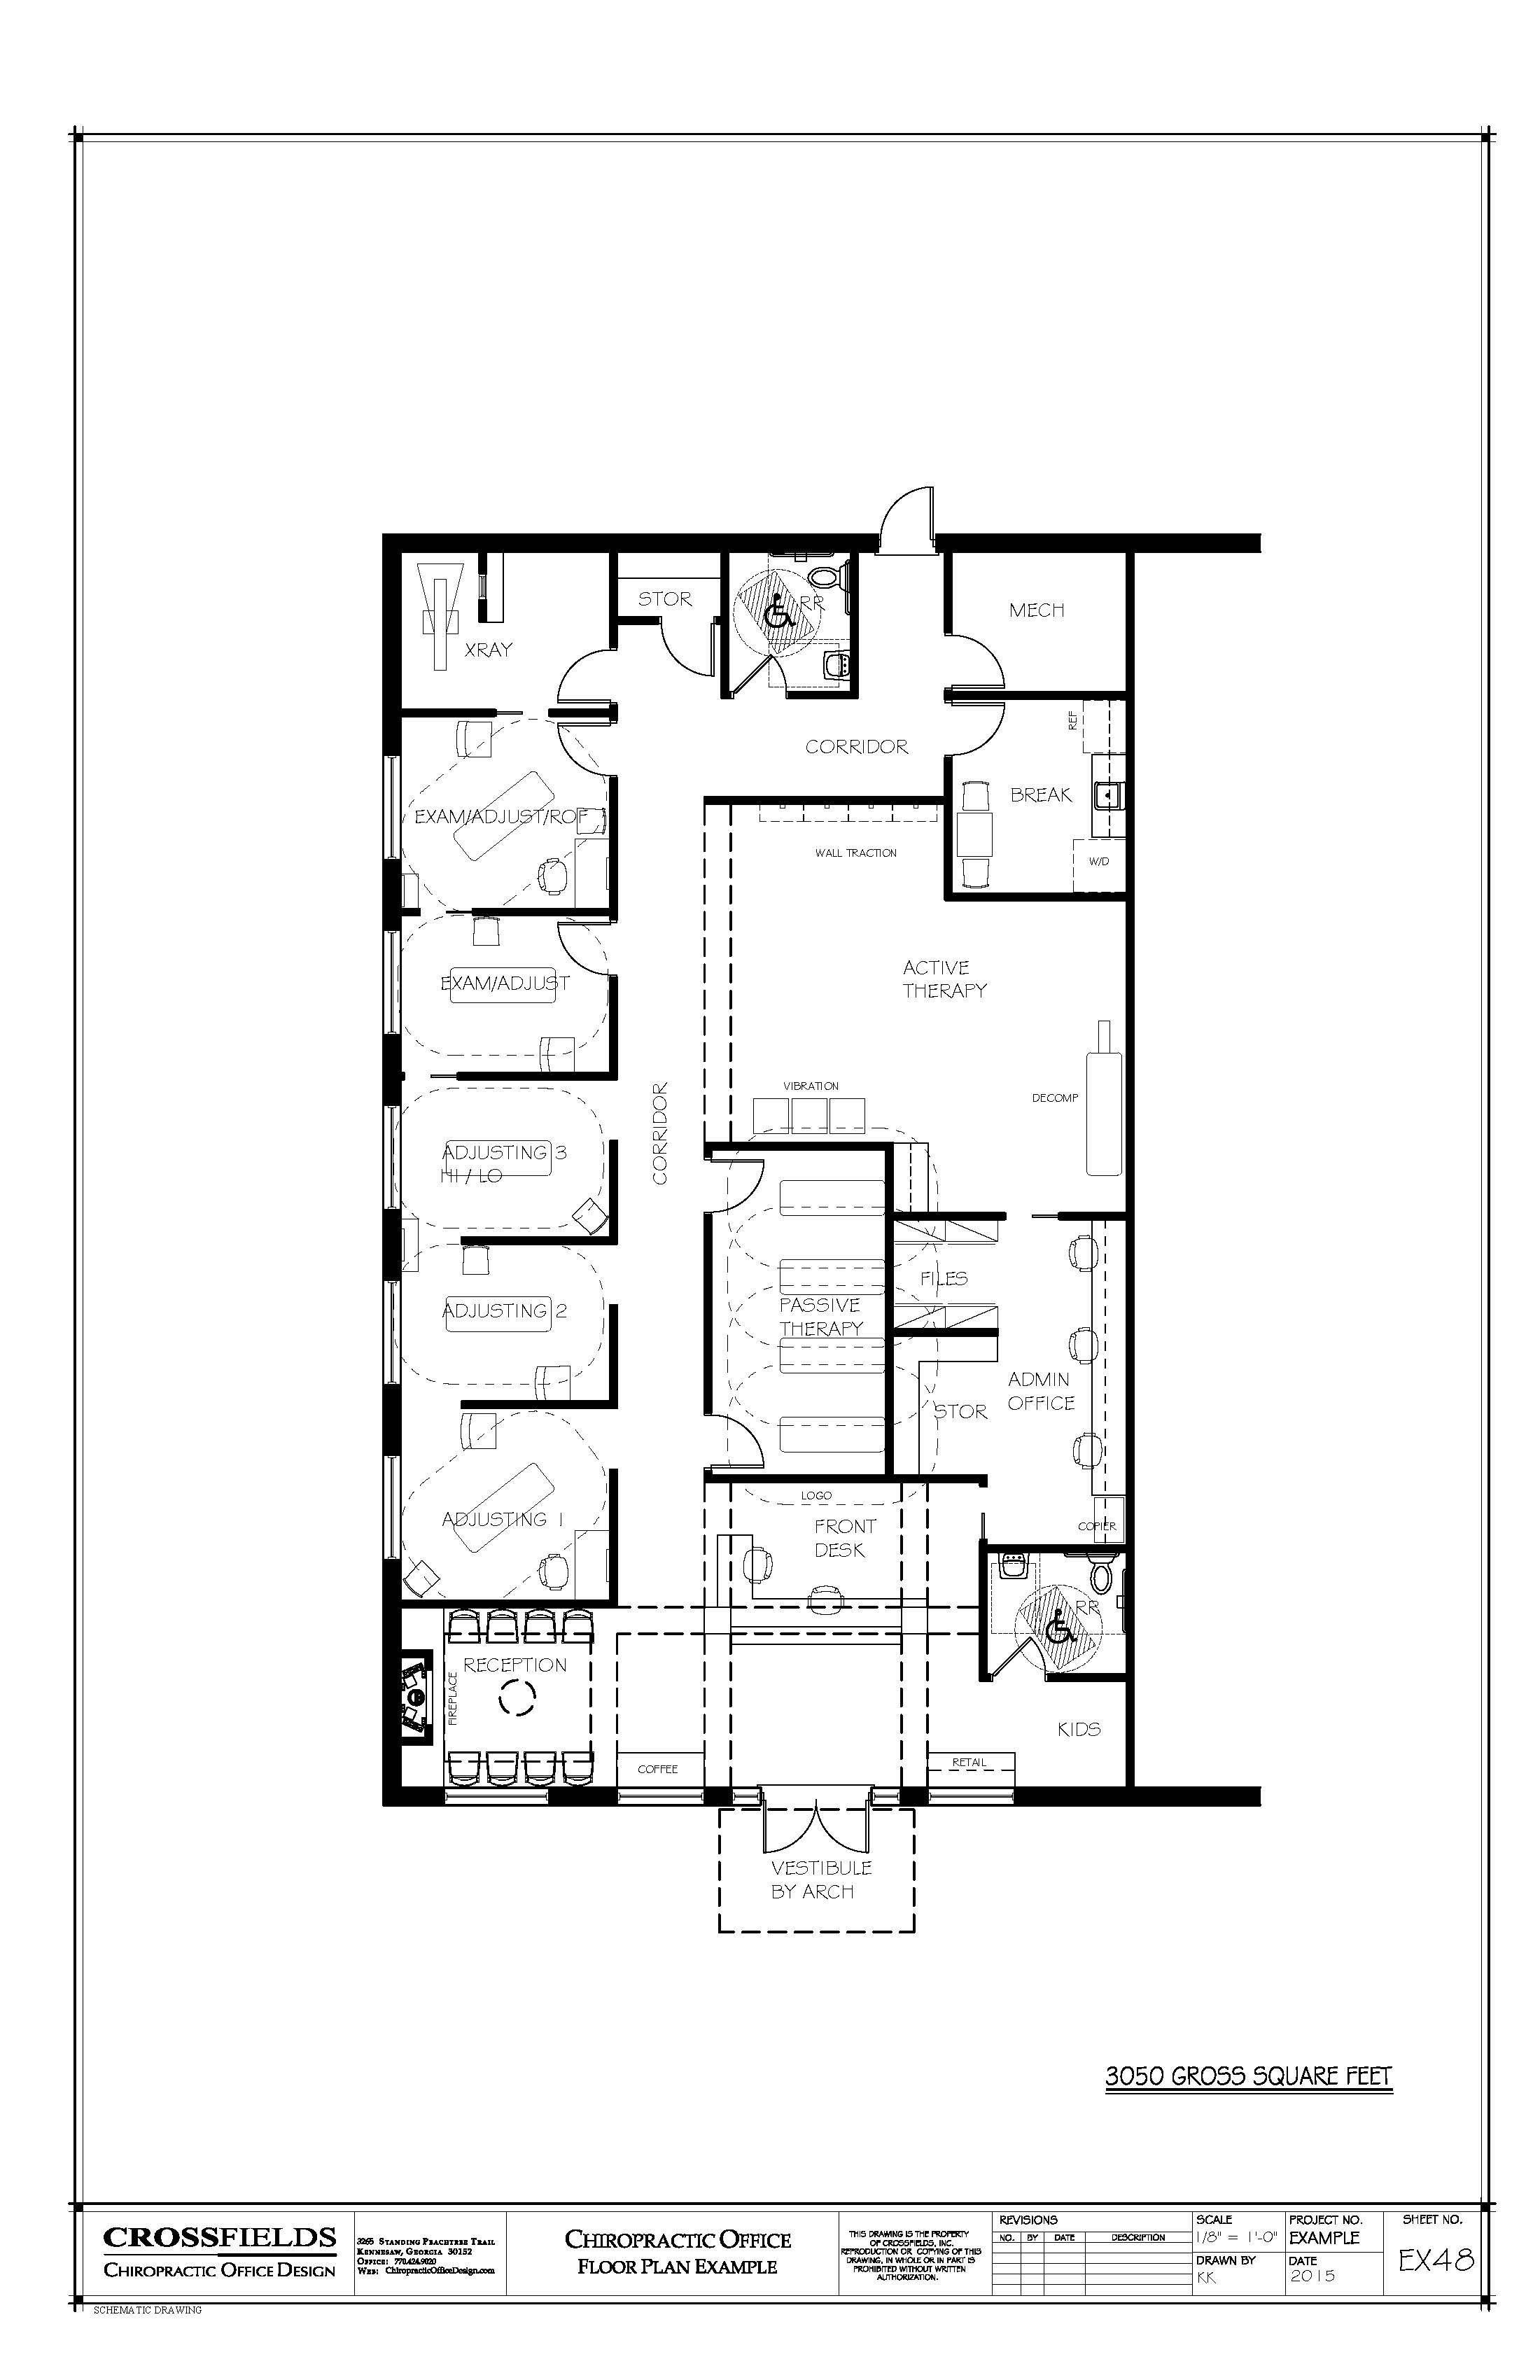 Chiropractic office floorplan with active passive for Office floor plan samples